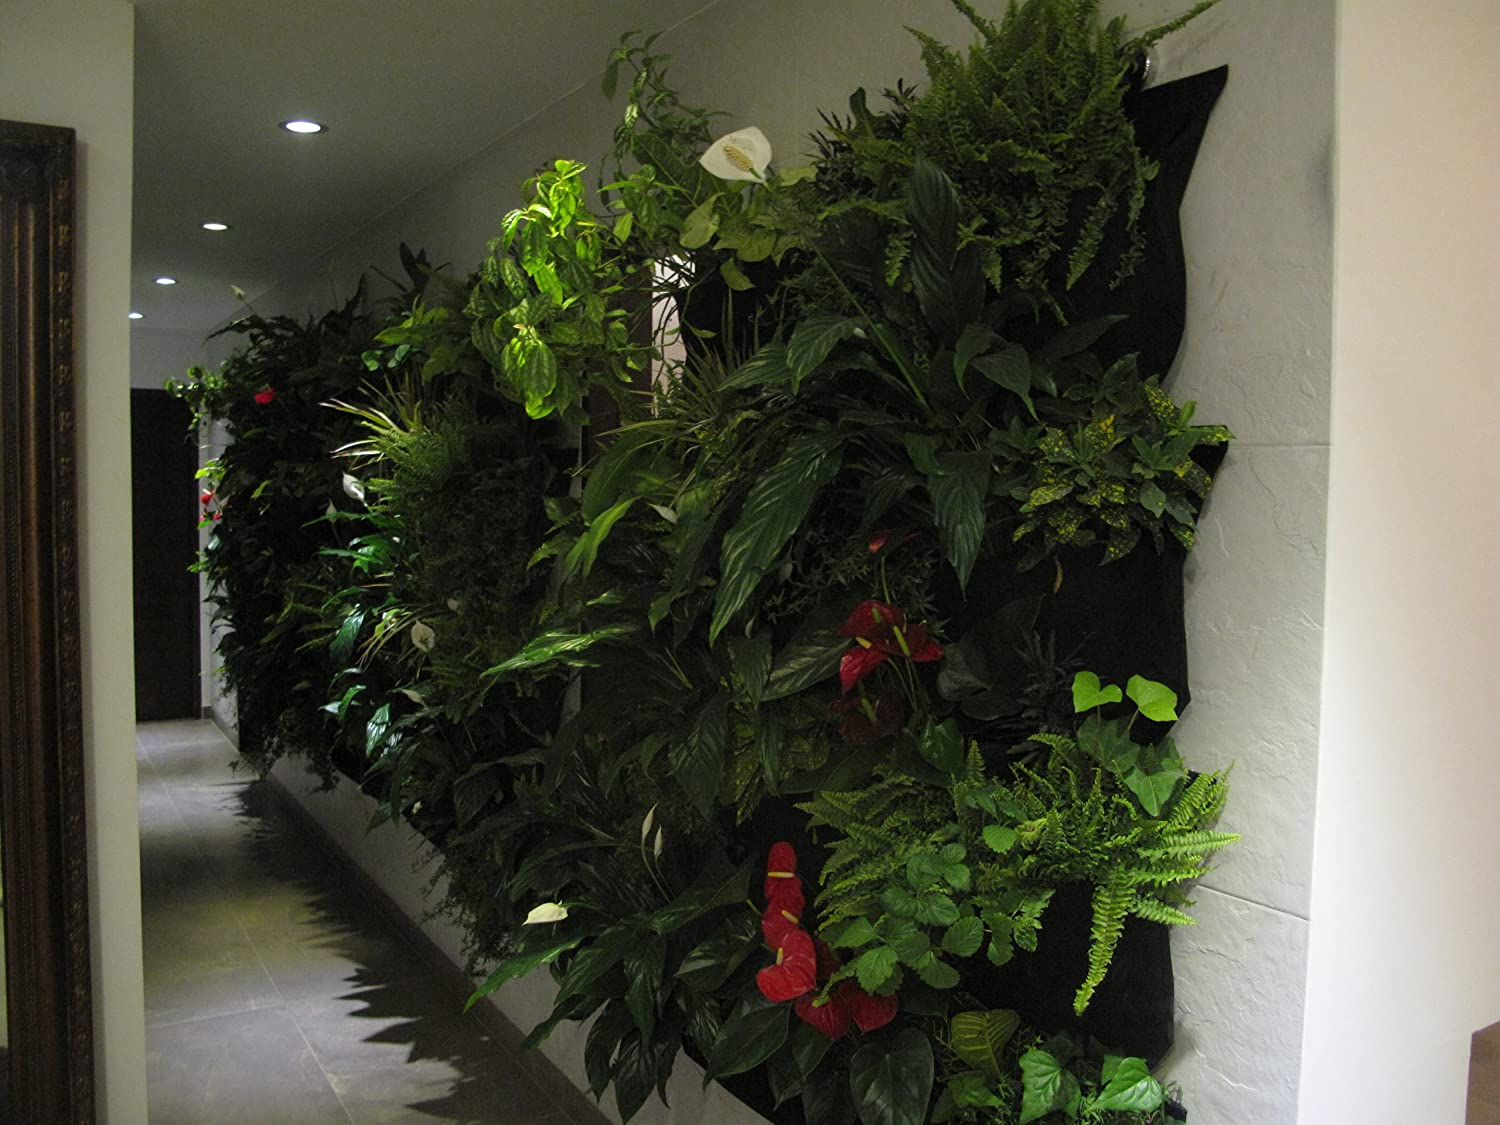 Amazon.com : Living Wall Planter INDOOR/OUTDOOR USE W/Reservoir (Color:  Chocolate) Vertical Garden (Modular, Sustainable, Eco, Green) Hanging  Planter ...